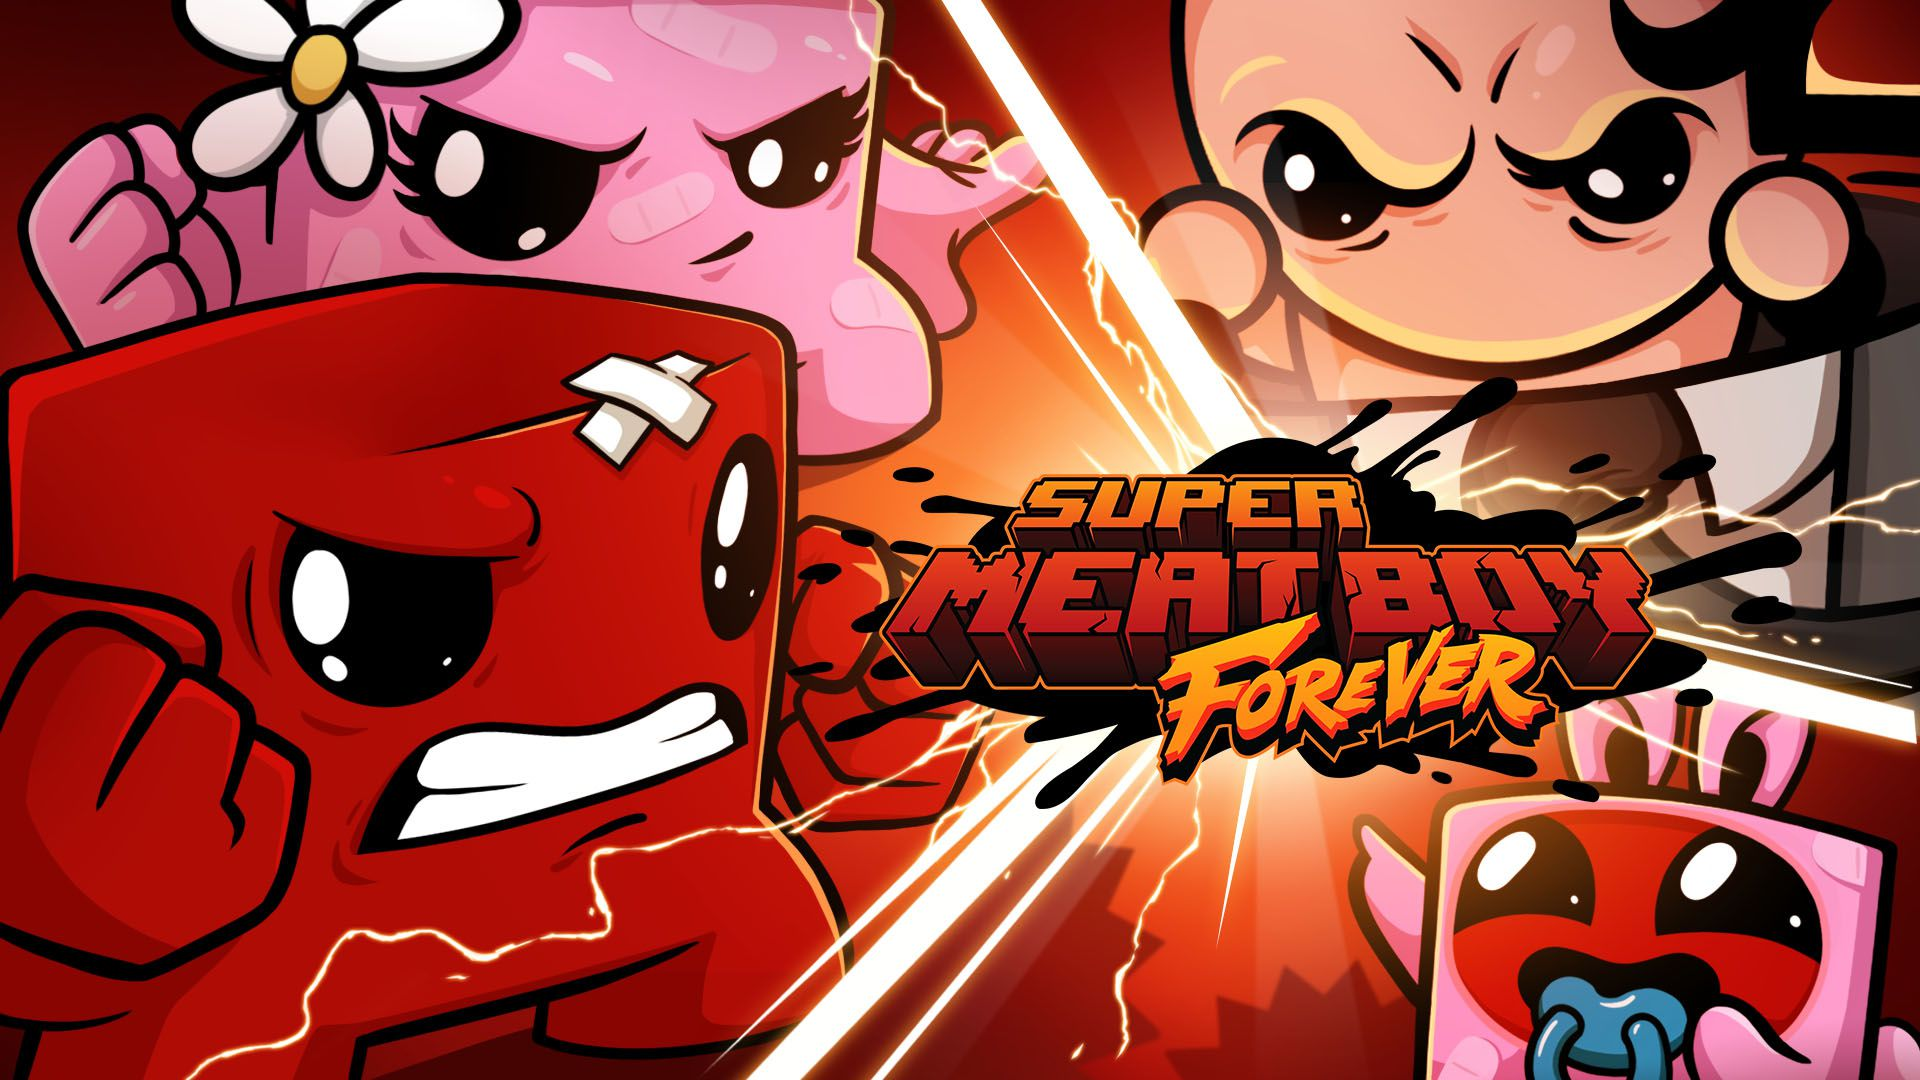 Super Meat Boy Forever Principal